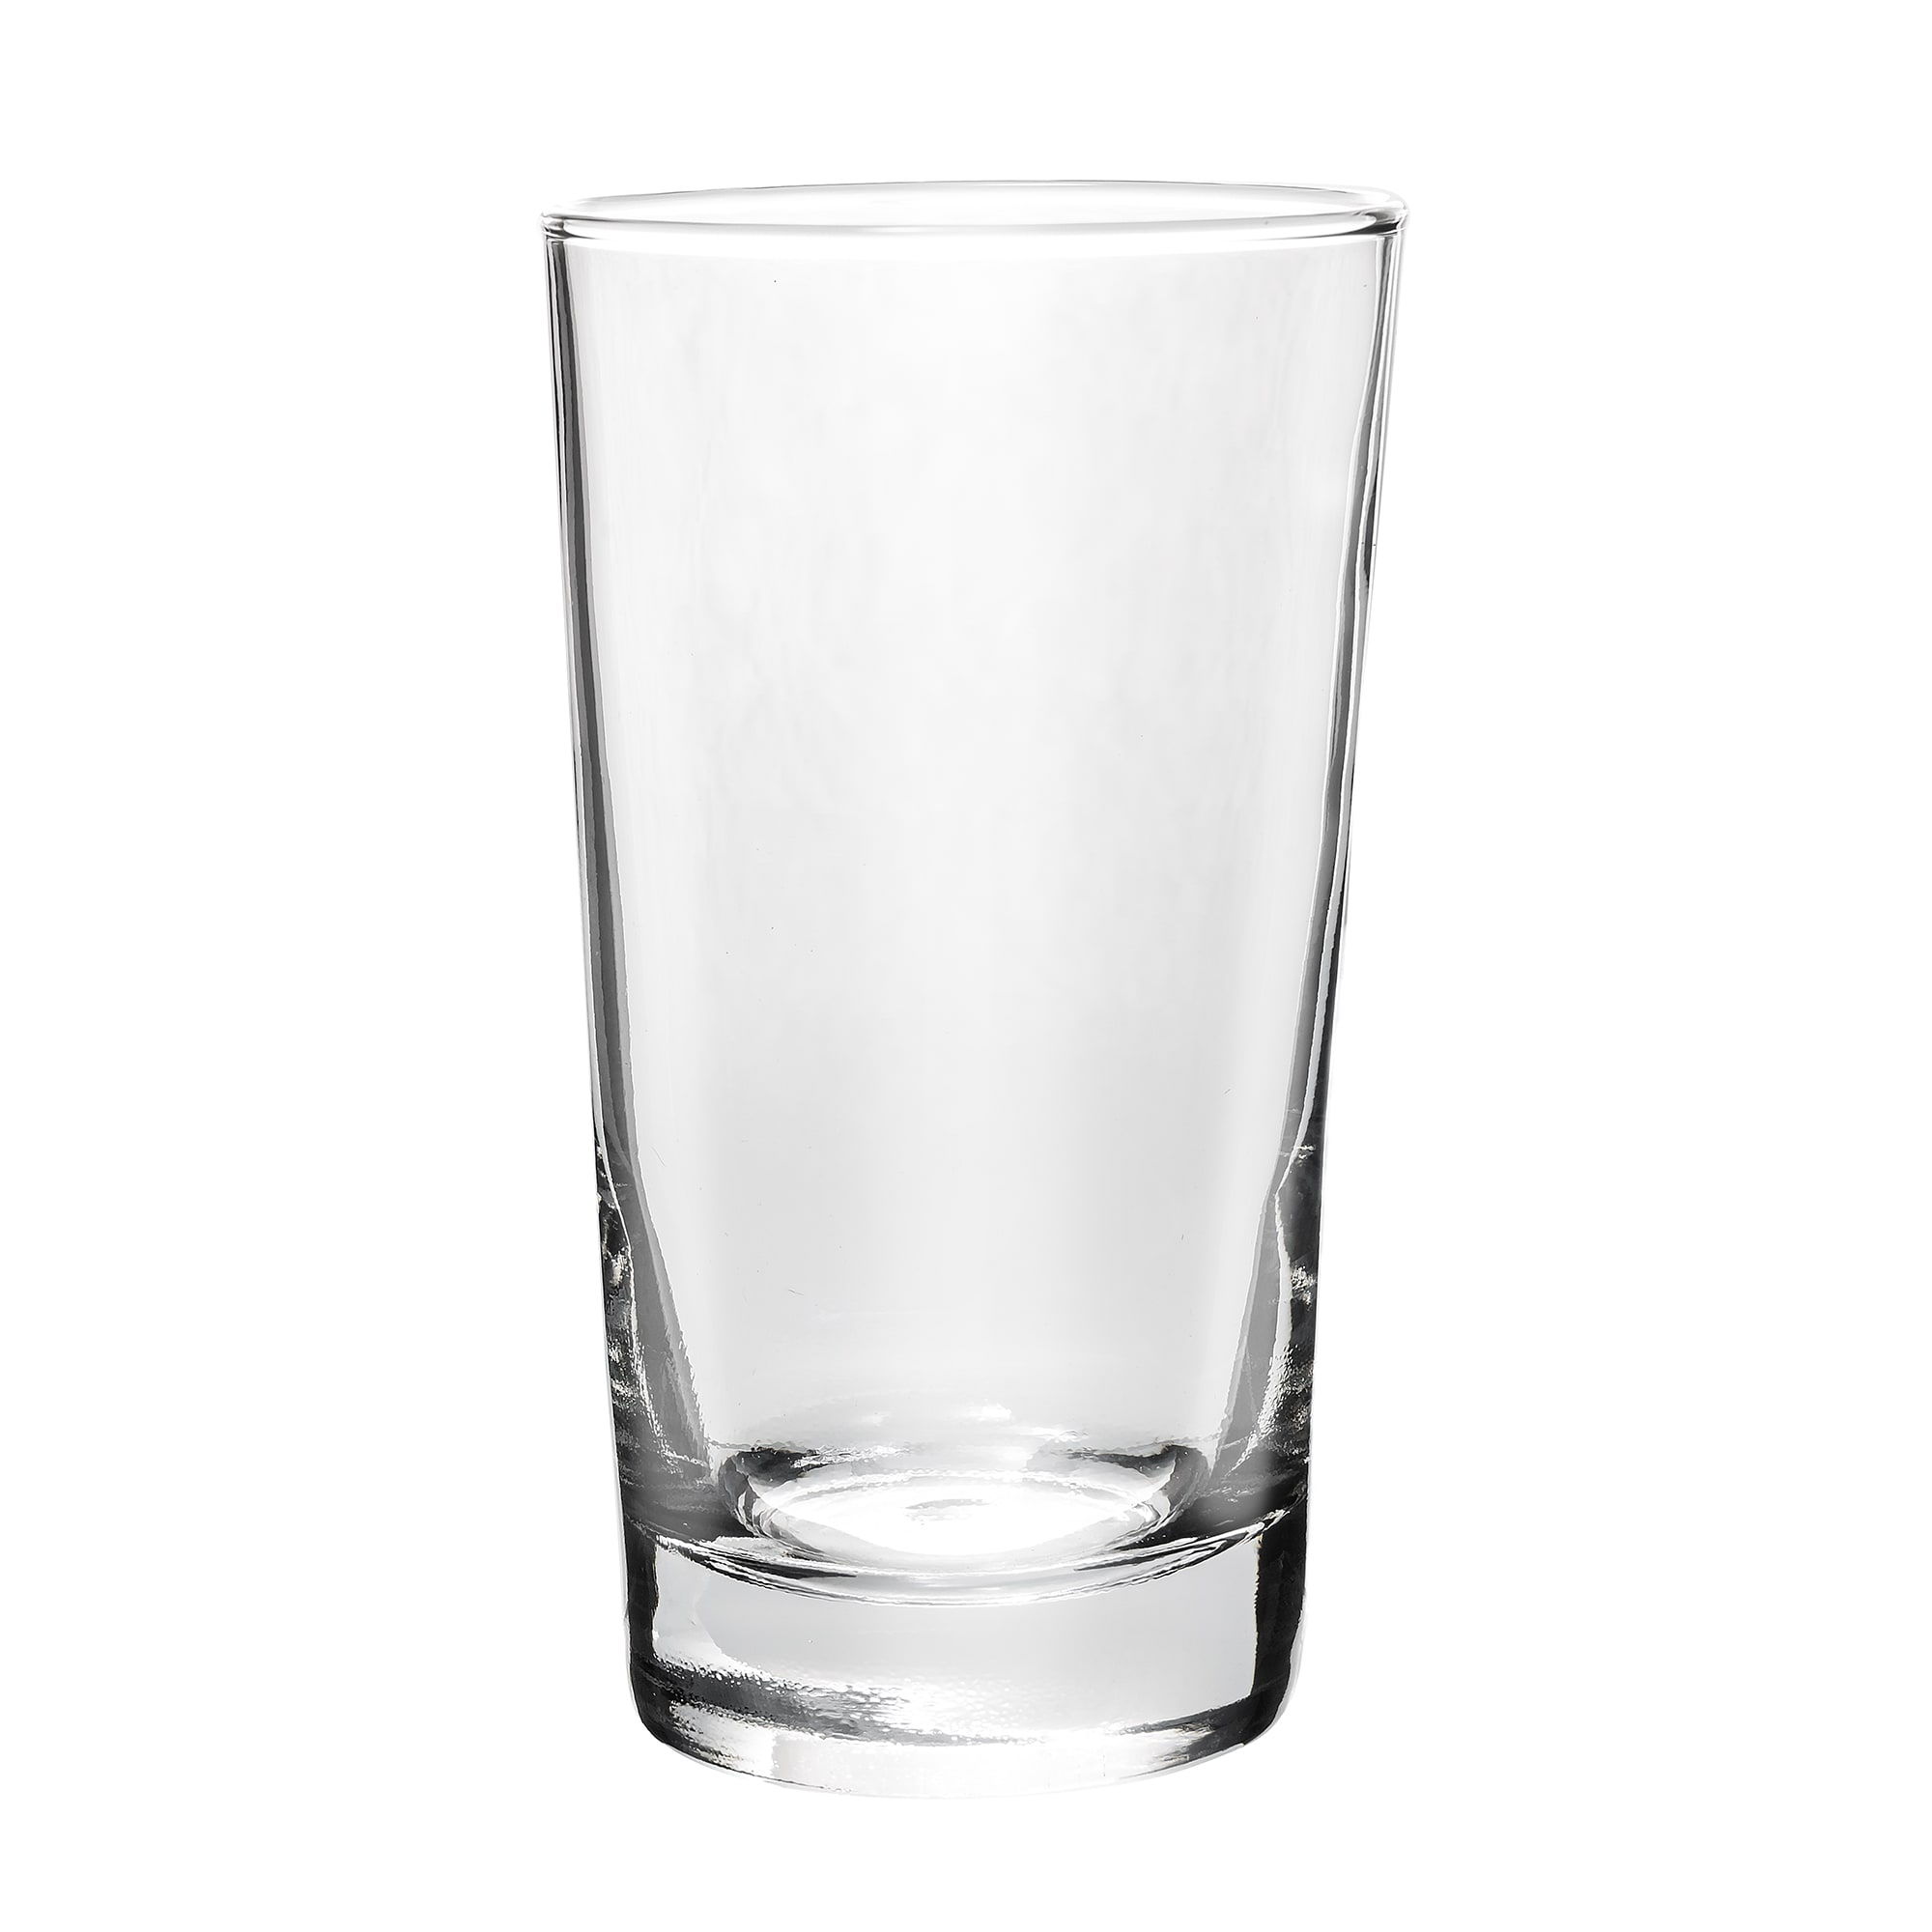 Libbey 132 8 oz Heavy Base Hi-Ball Glass - Safedge Rim Guarantee